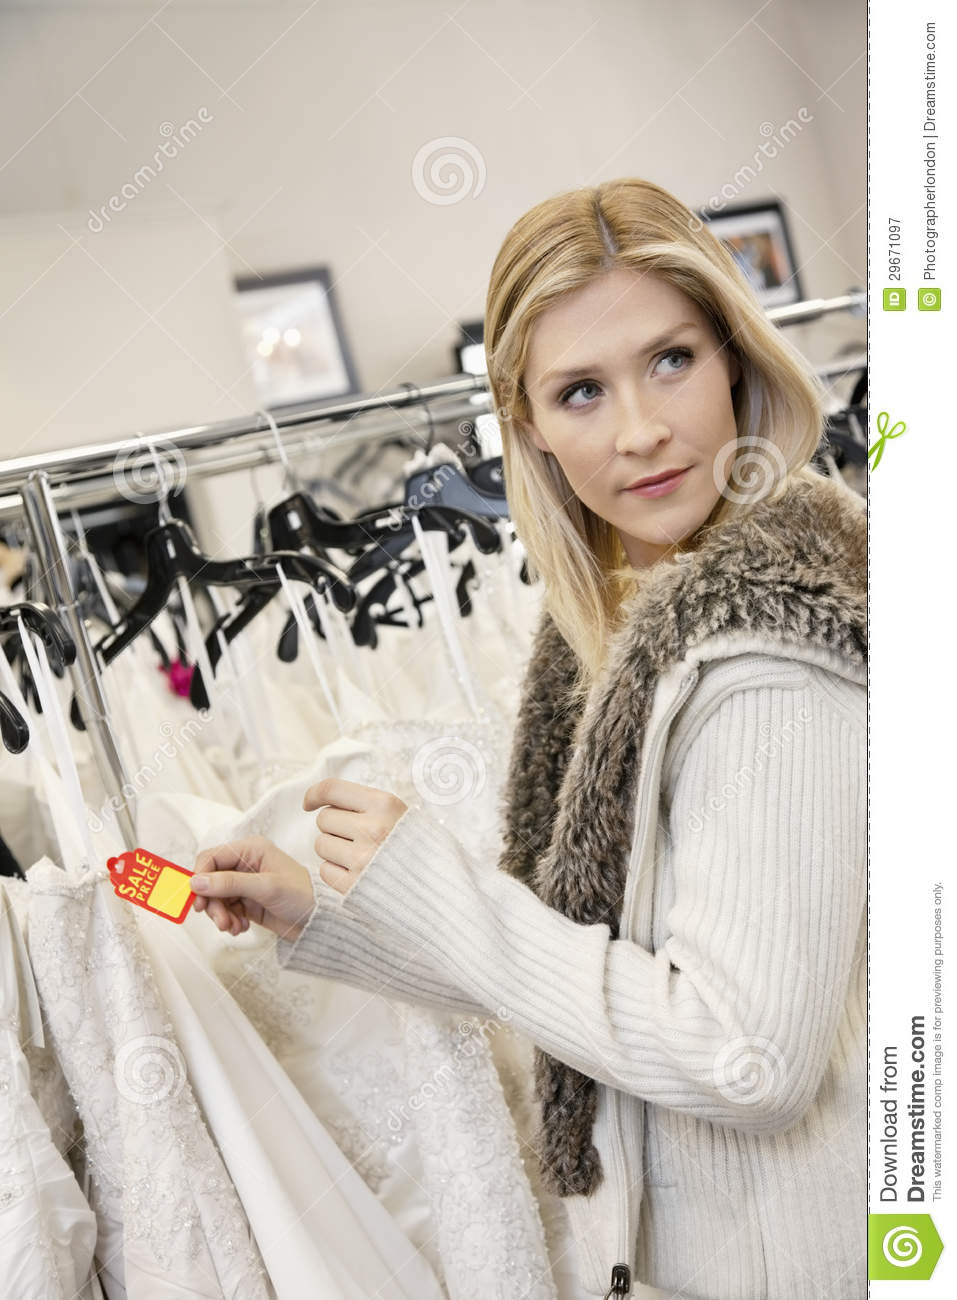 Beautiful Young Woman Holding Price Tag While Looking Away